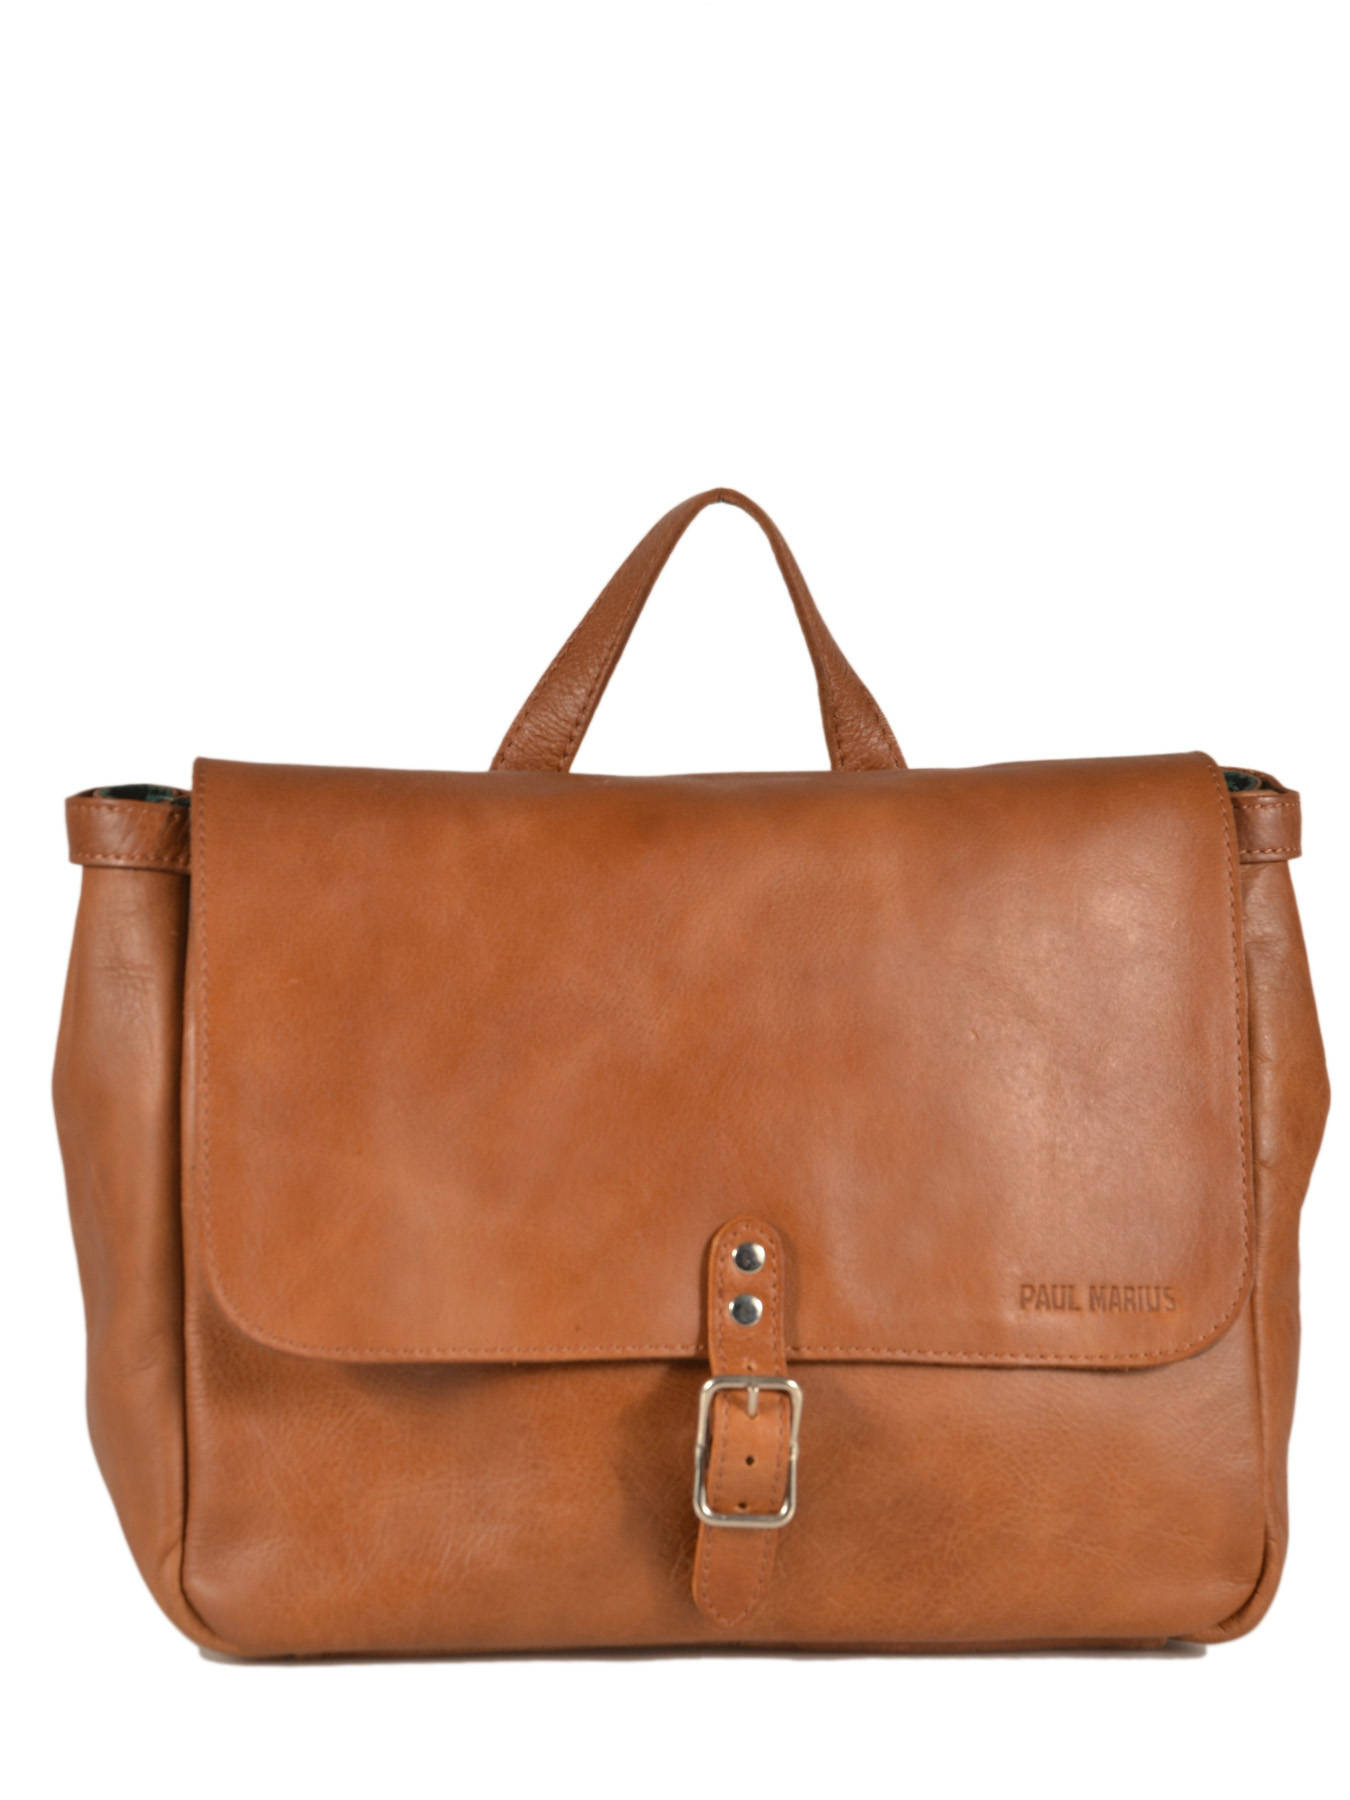 Shopping > sac a main paul marius soldes, Up to 71% OFF